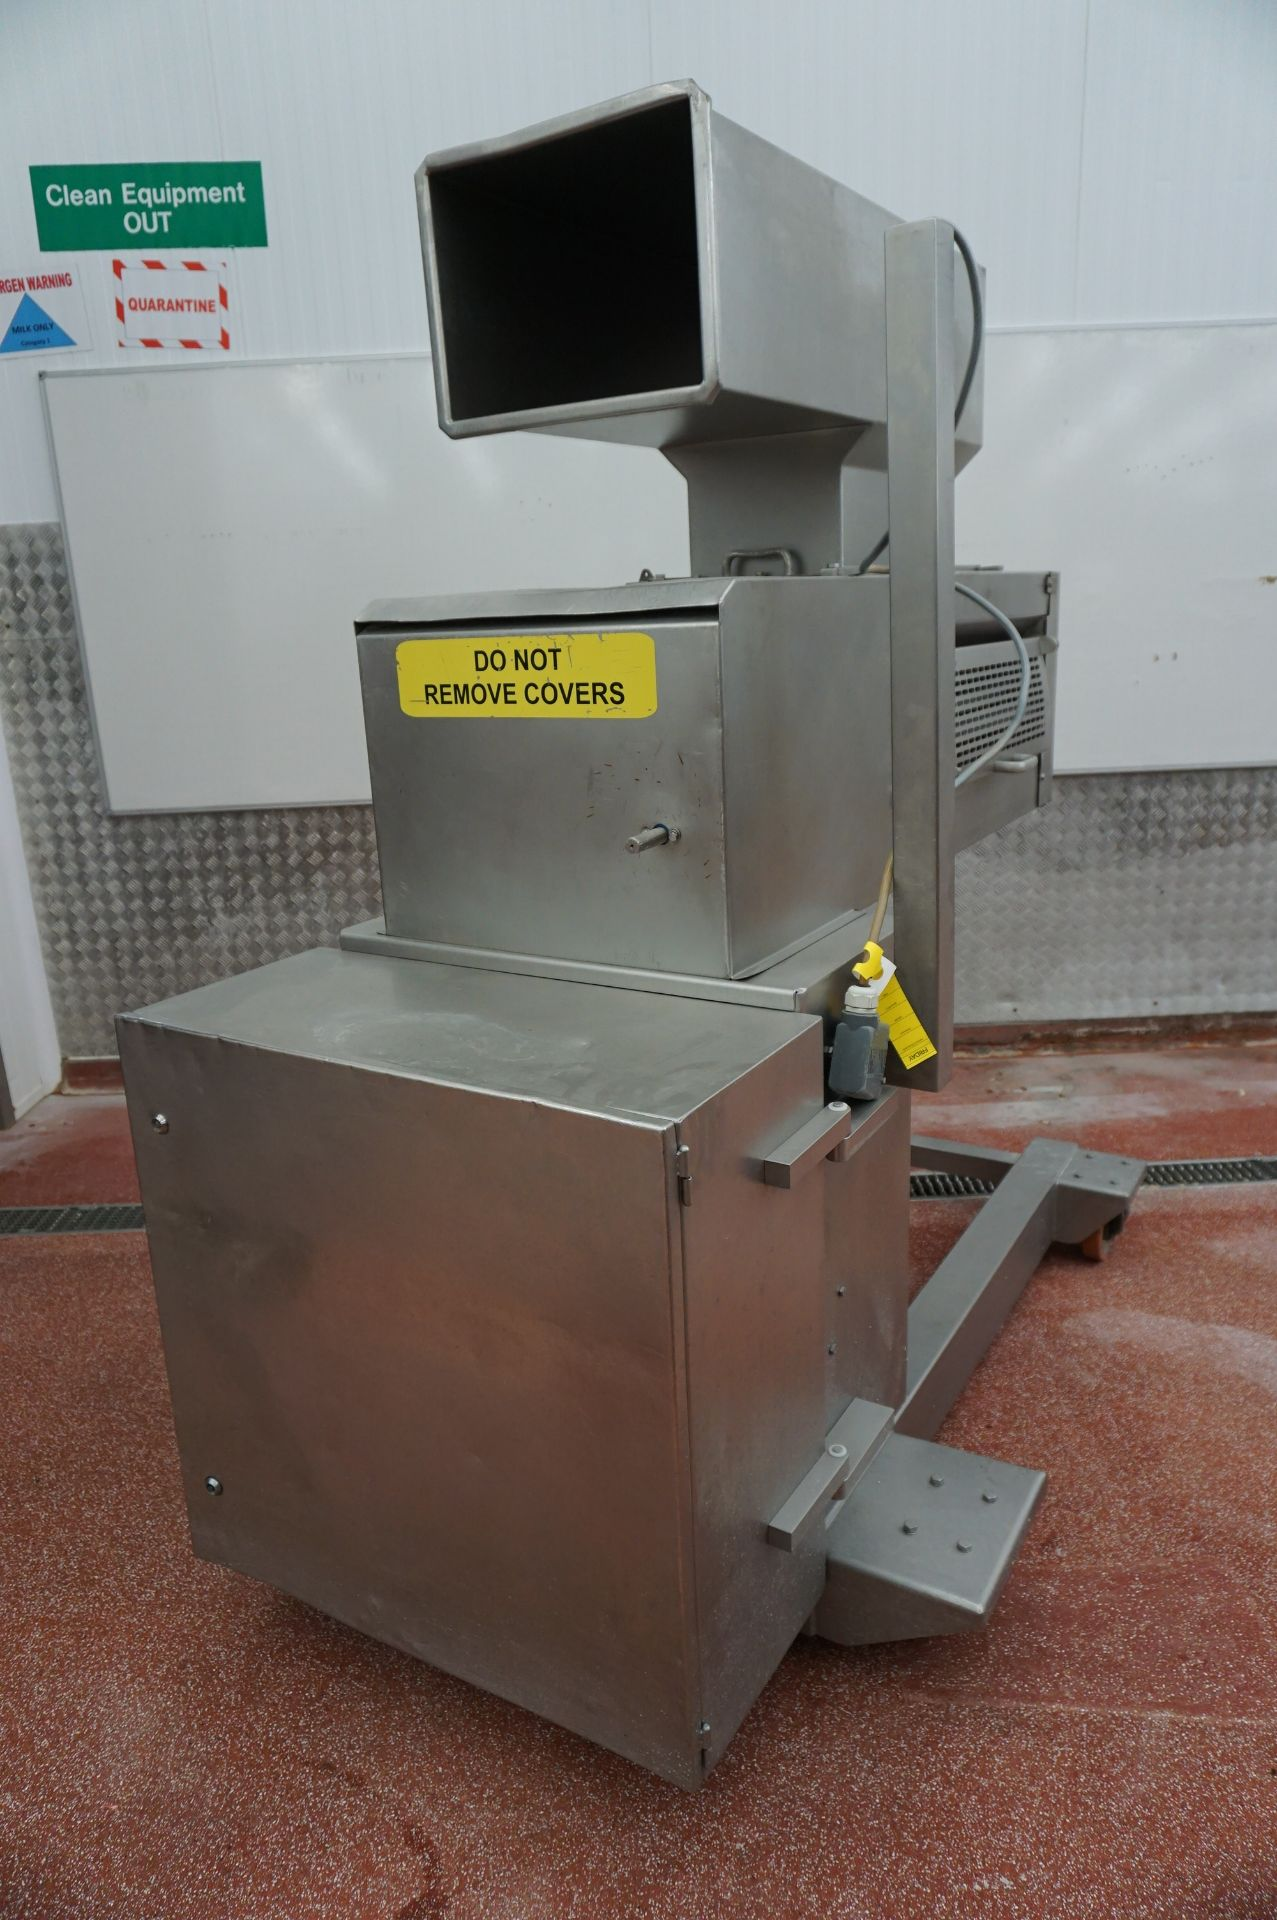 Lot 10 - Unbadged mobile 3 roll pastry extruder with infeed station